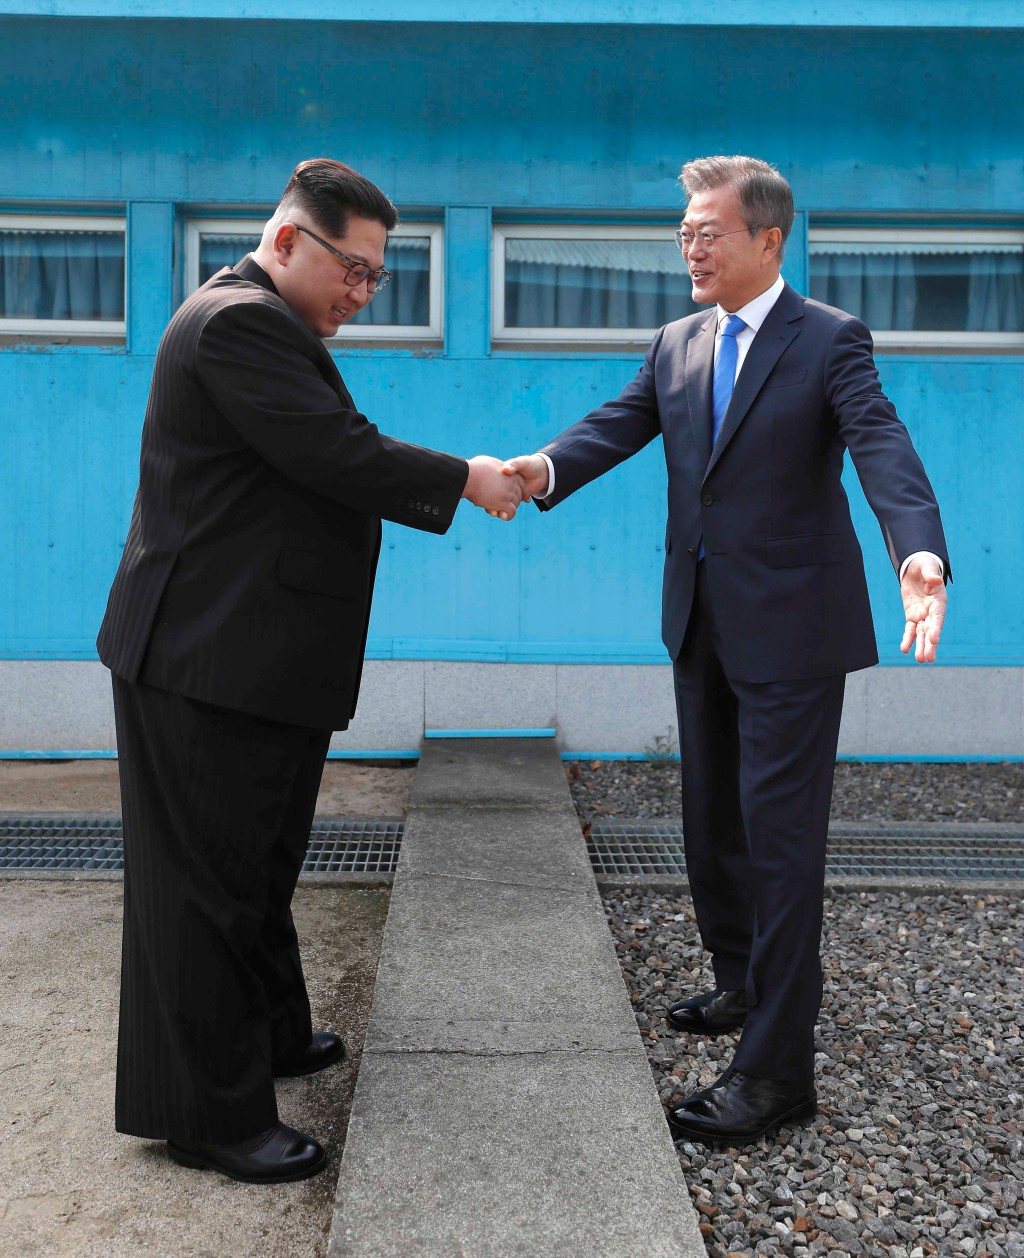 FILE - In this April 27, 2018 file photo, North Korean leader Kim Jong Un, left, shakes hands with South Korean President Moon Jae-in over the militar...